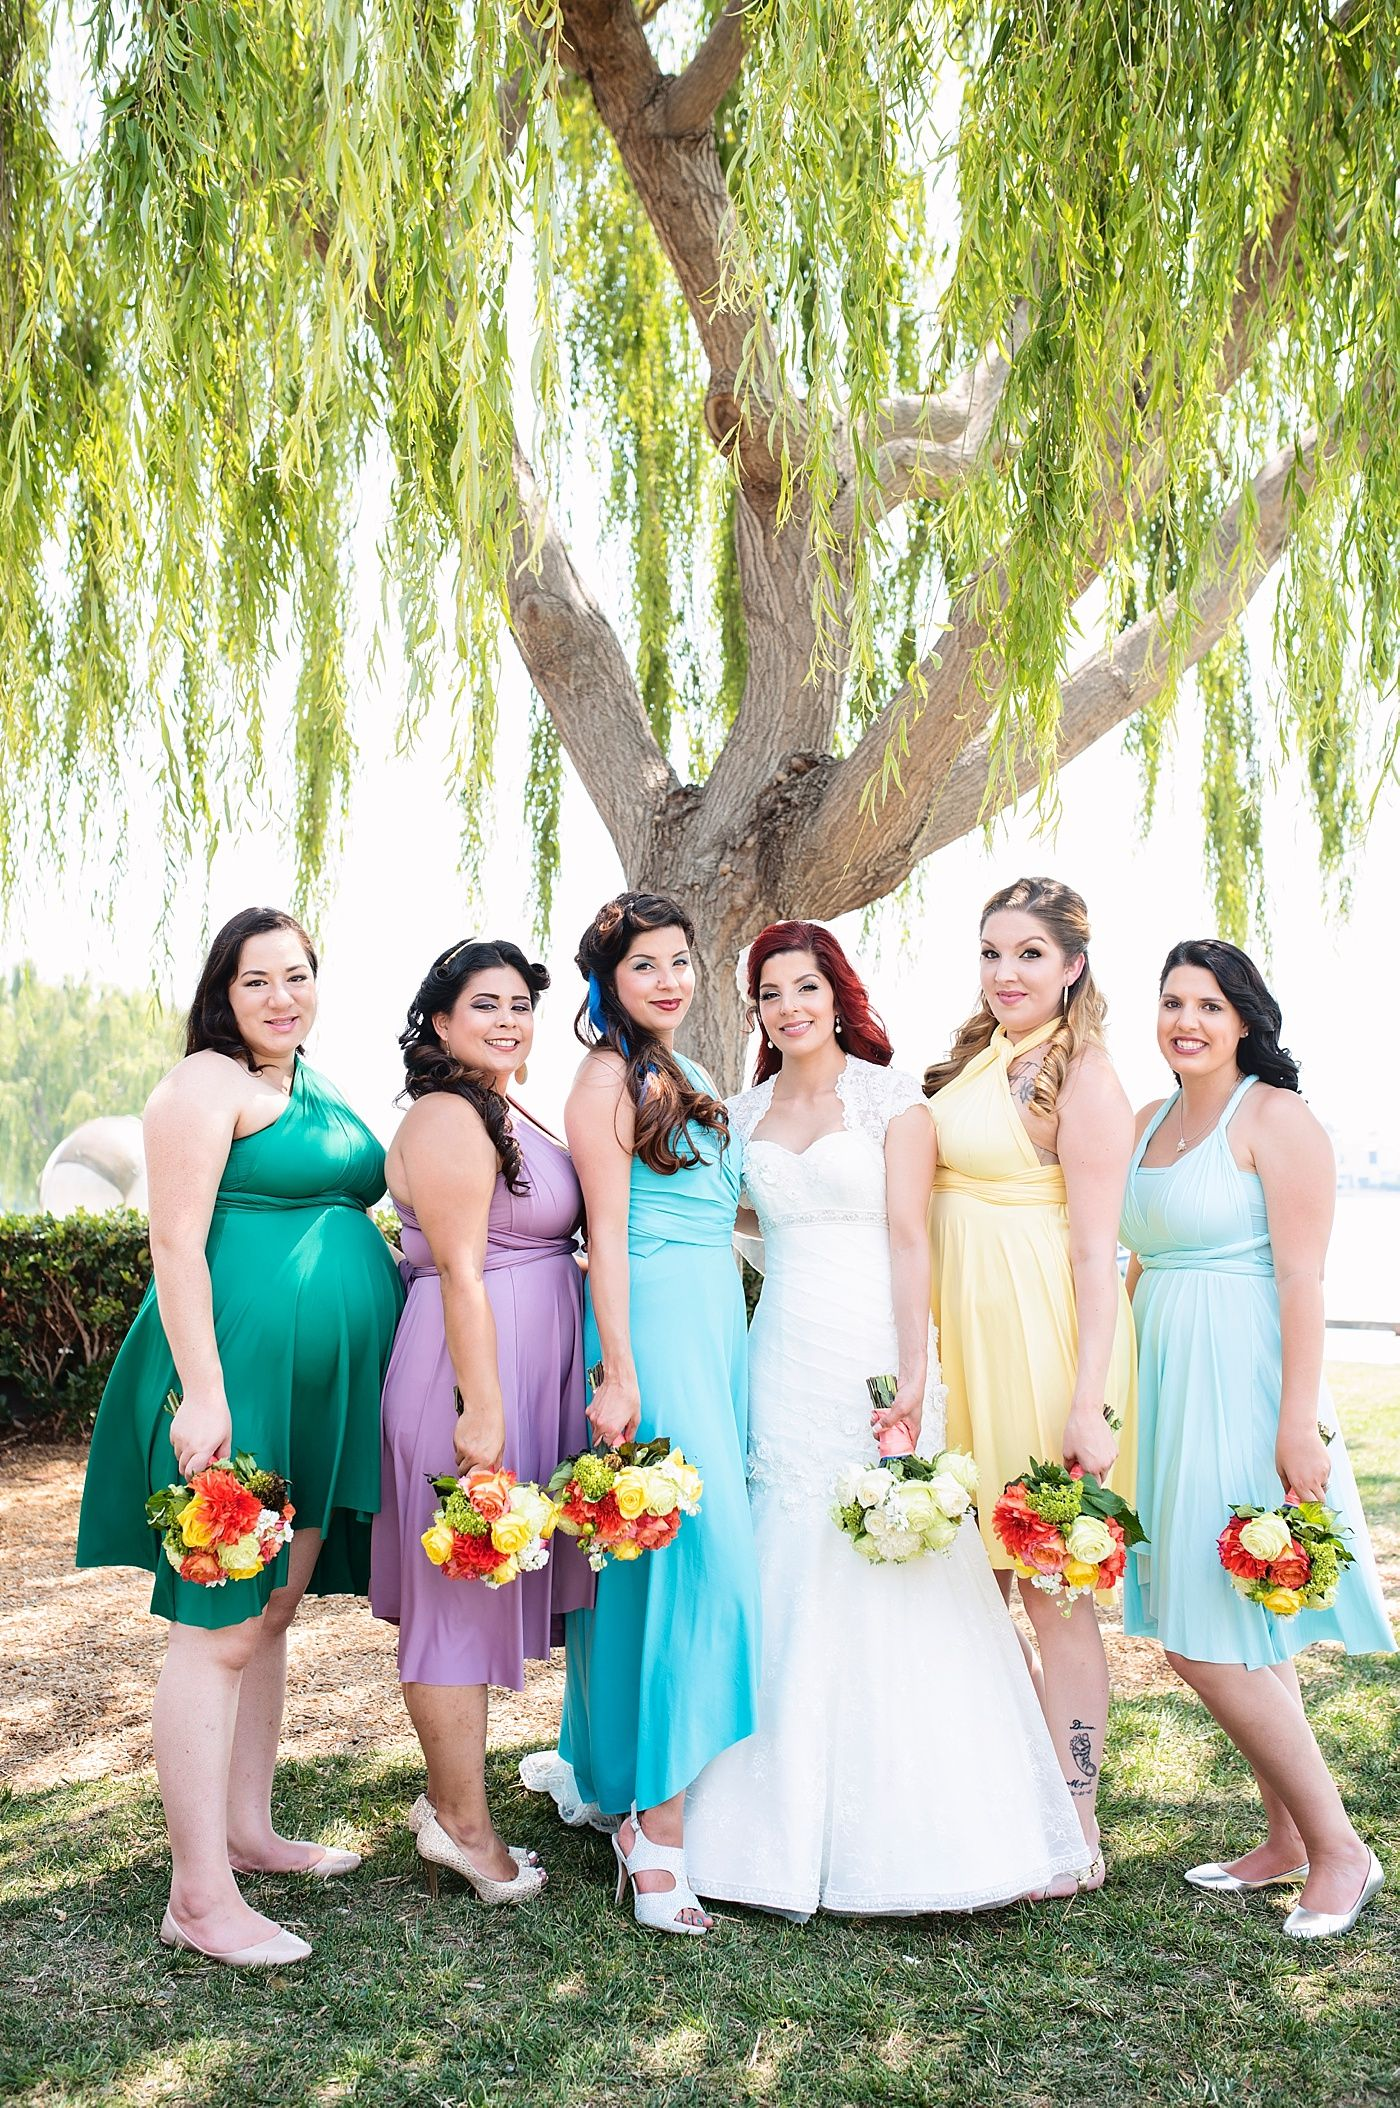 Disney Princesses Wedding Inspired World Of Color Inspiration Bridesmaids Dresses Infinity Brides